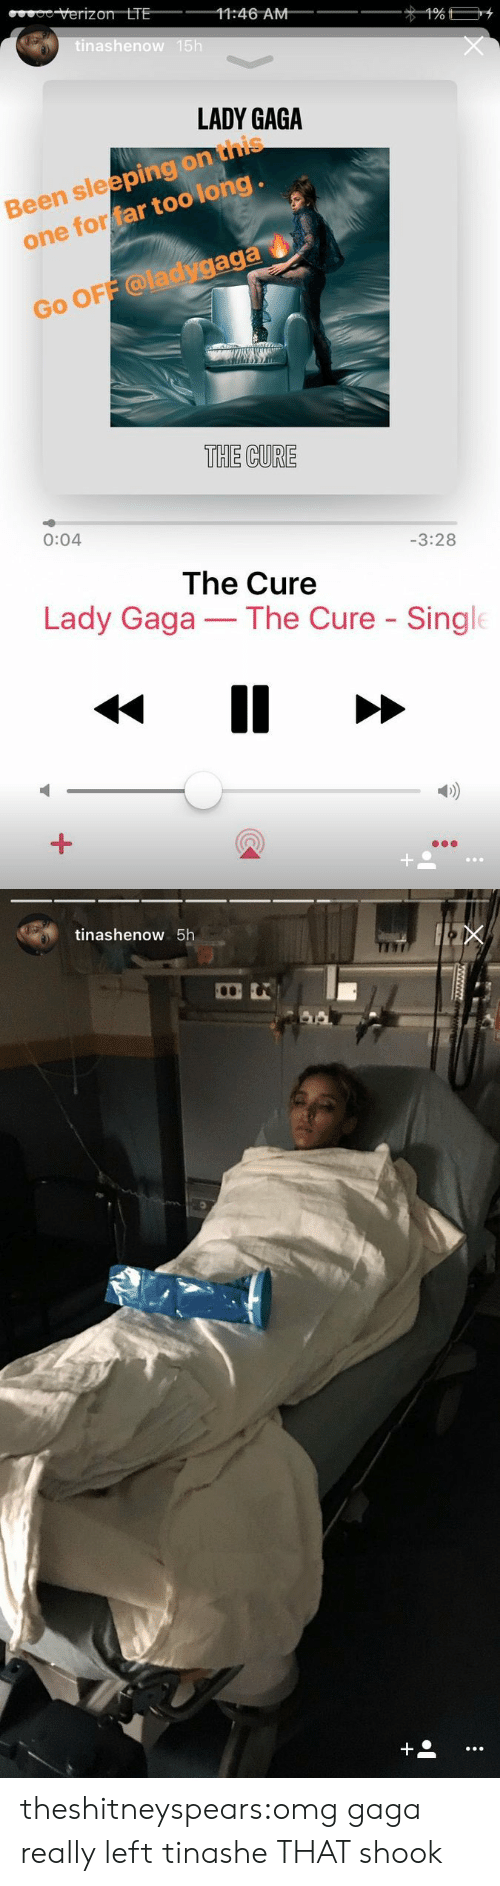 Lady Gaga: verizon LTE  1:46 AM  nashenow  LADY GAGA  Been sleeping on this  one for far too long  d  aga  Go OFF @ladyg  THE CURE  0:04  -3:28  The Cure  Lady Gaga-The Cure Single  D)   tinashenow 5h theshitneyspears:omg gaga really left tinashe THAT shook